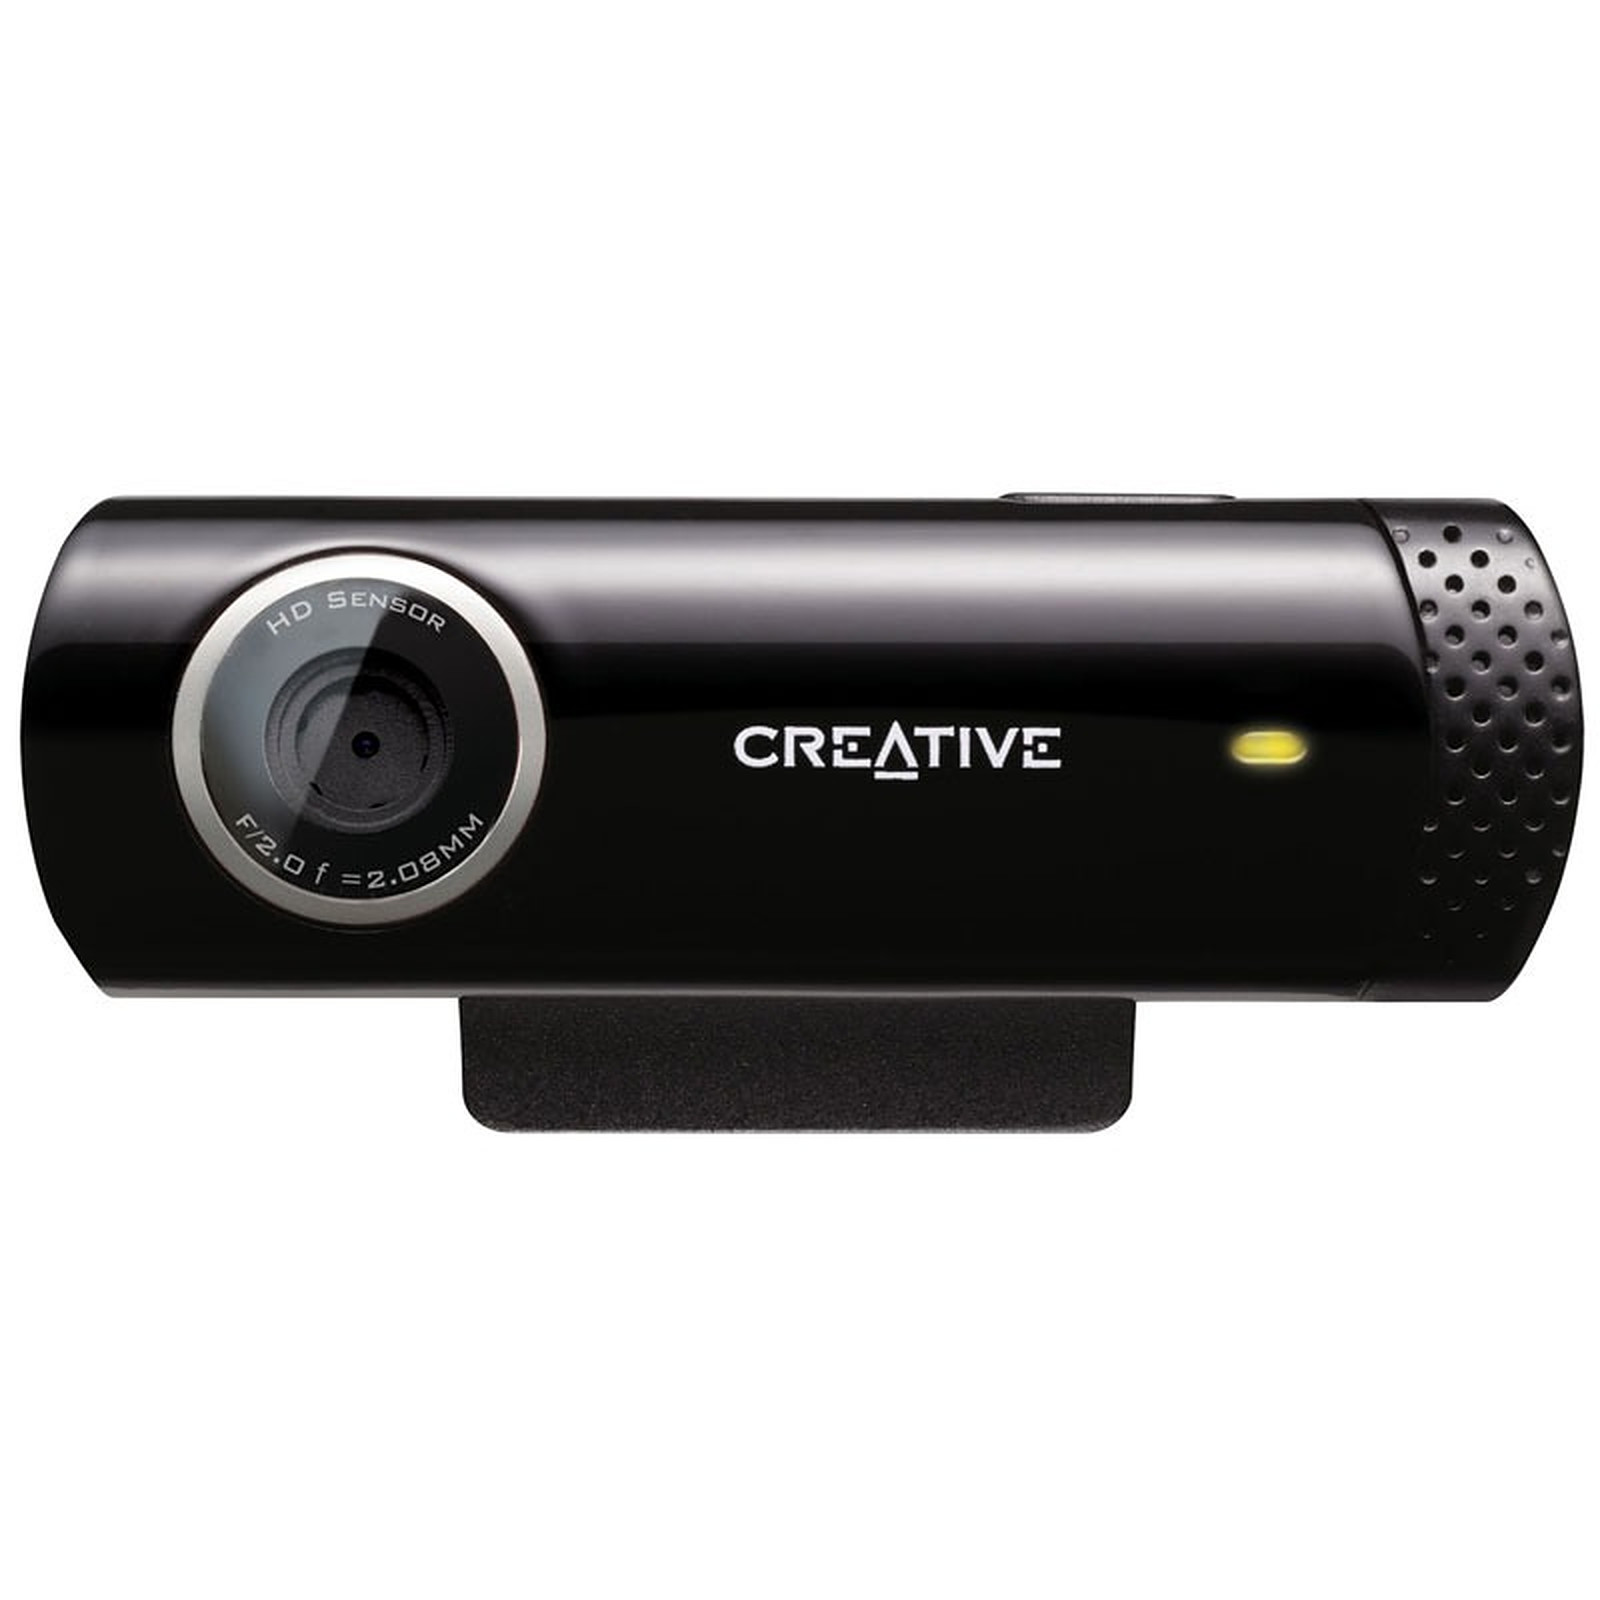 Hd cam chat